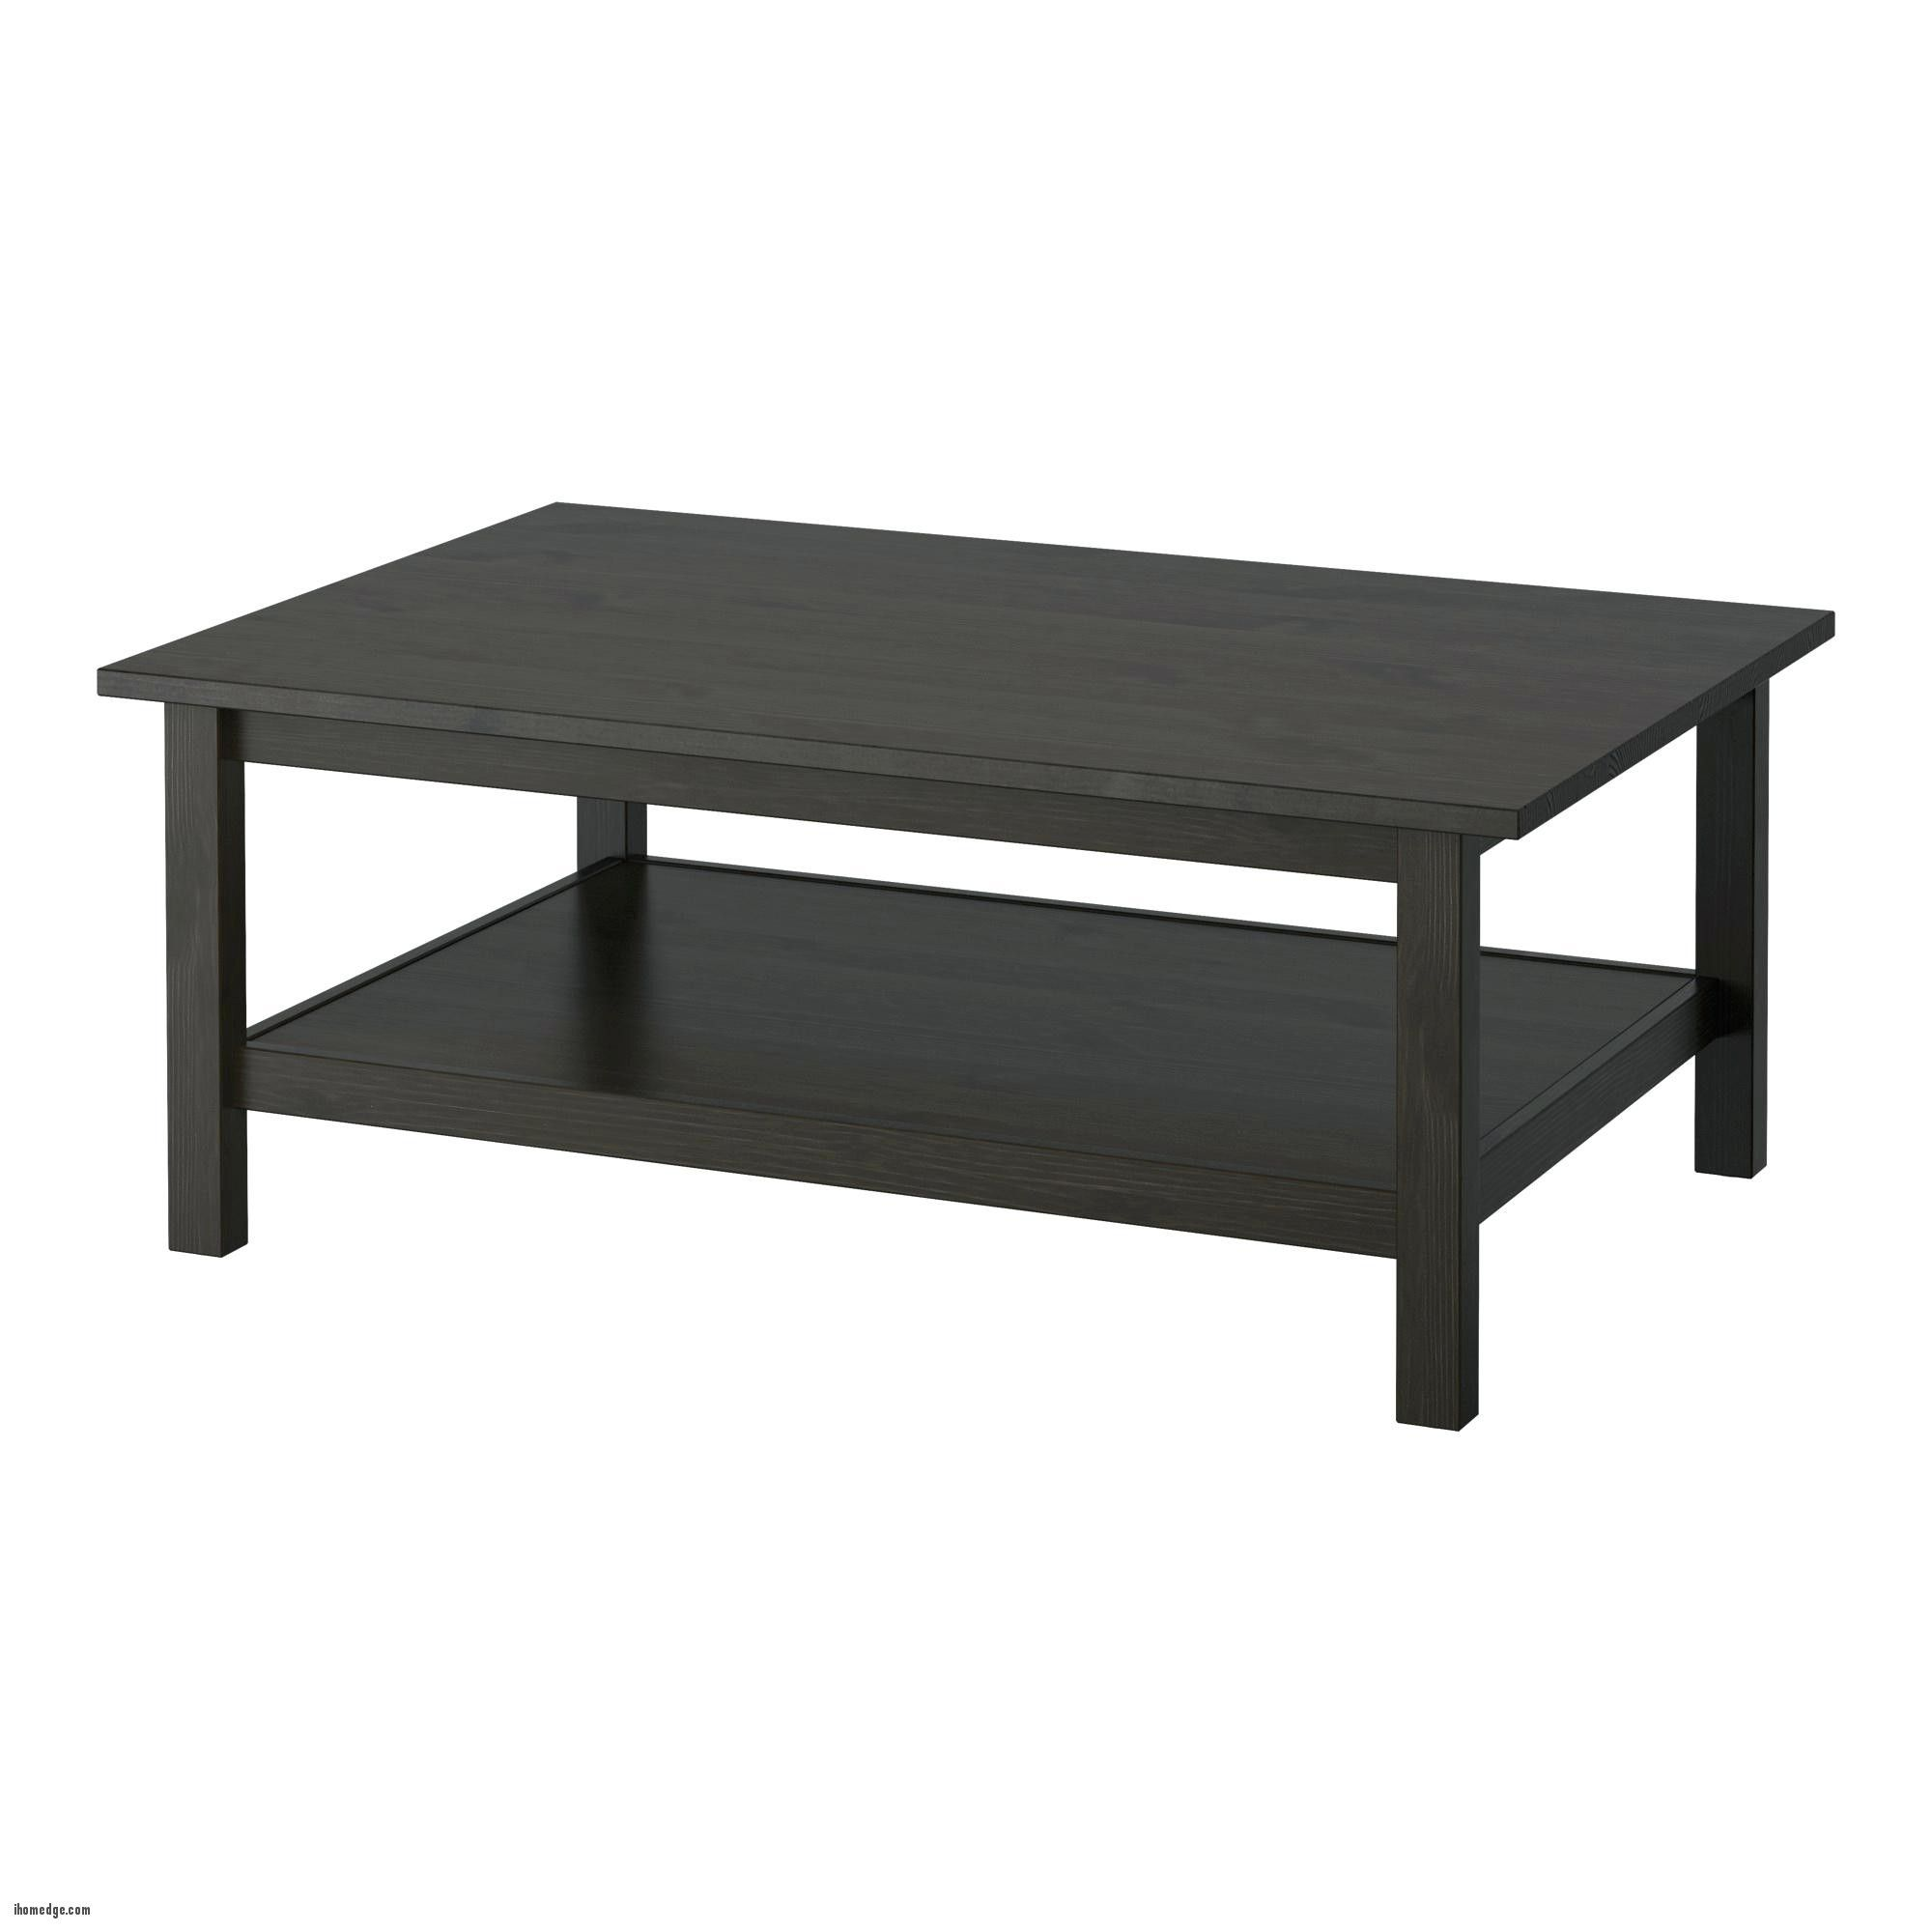 Inspirational wonderful storage end tables full image for ikea inspirational wonderful storage end tables full image for ikea storage coffee table box http geotapseo Gallery